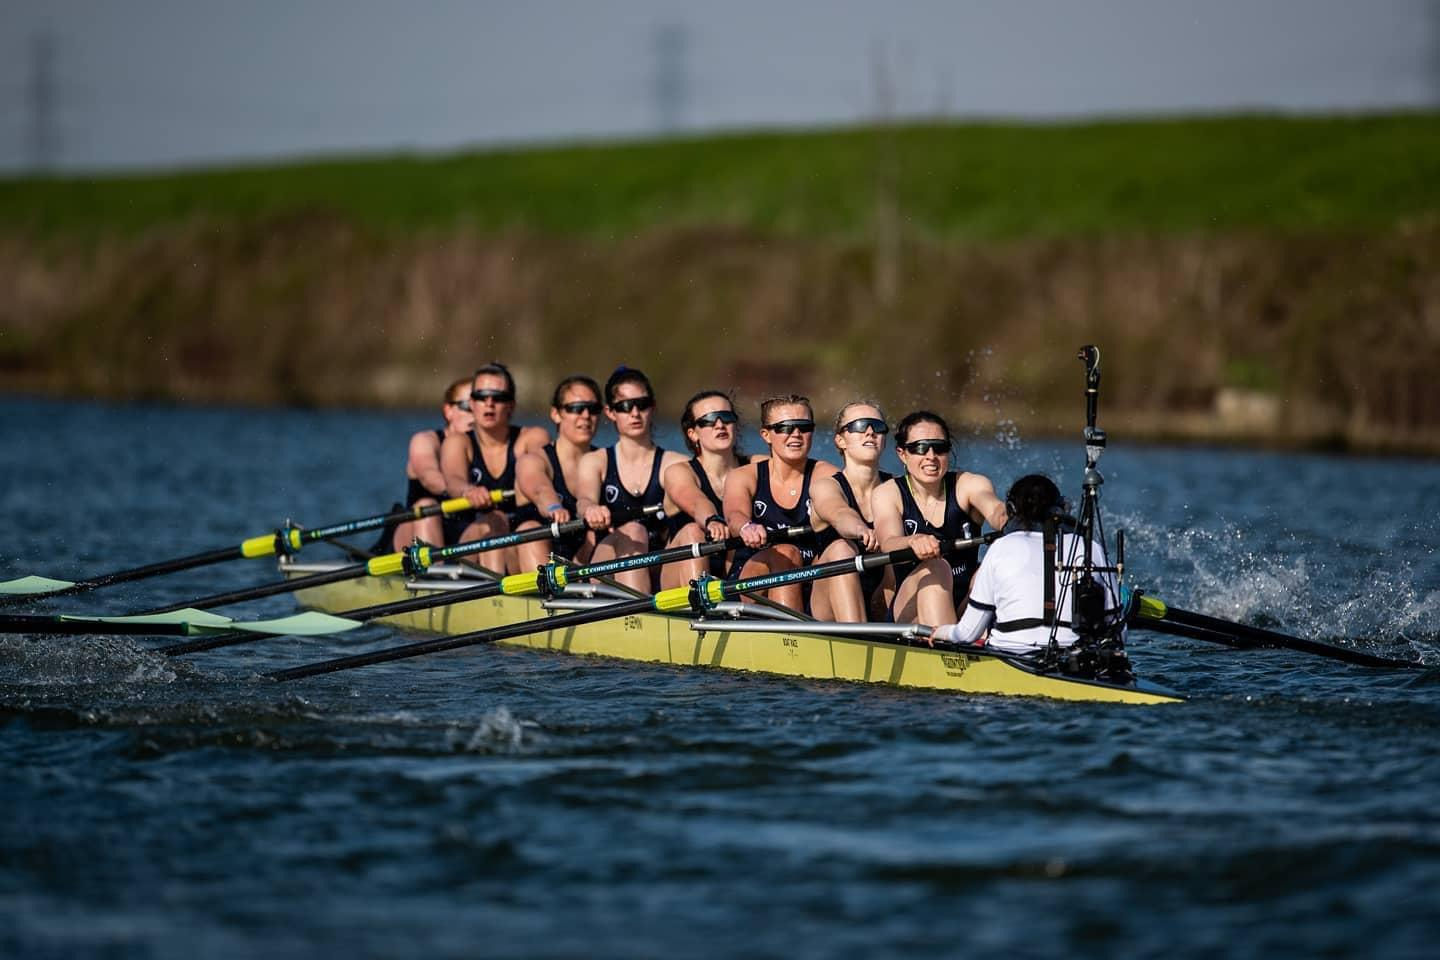 Pictured above: Megan Stoker, racing in the Women's Boat Race (Oxford v Cambridge) - photography credits: Lucinda Douse/Row360